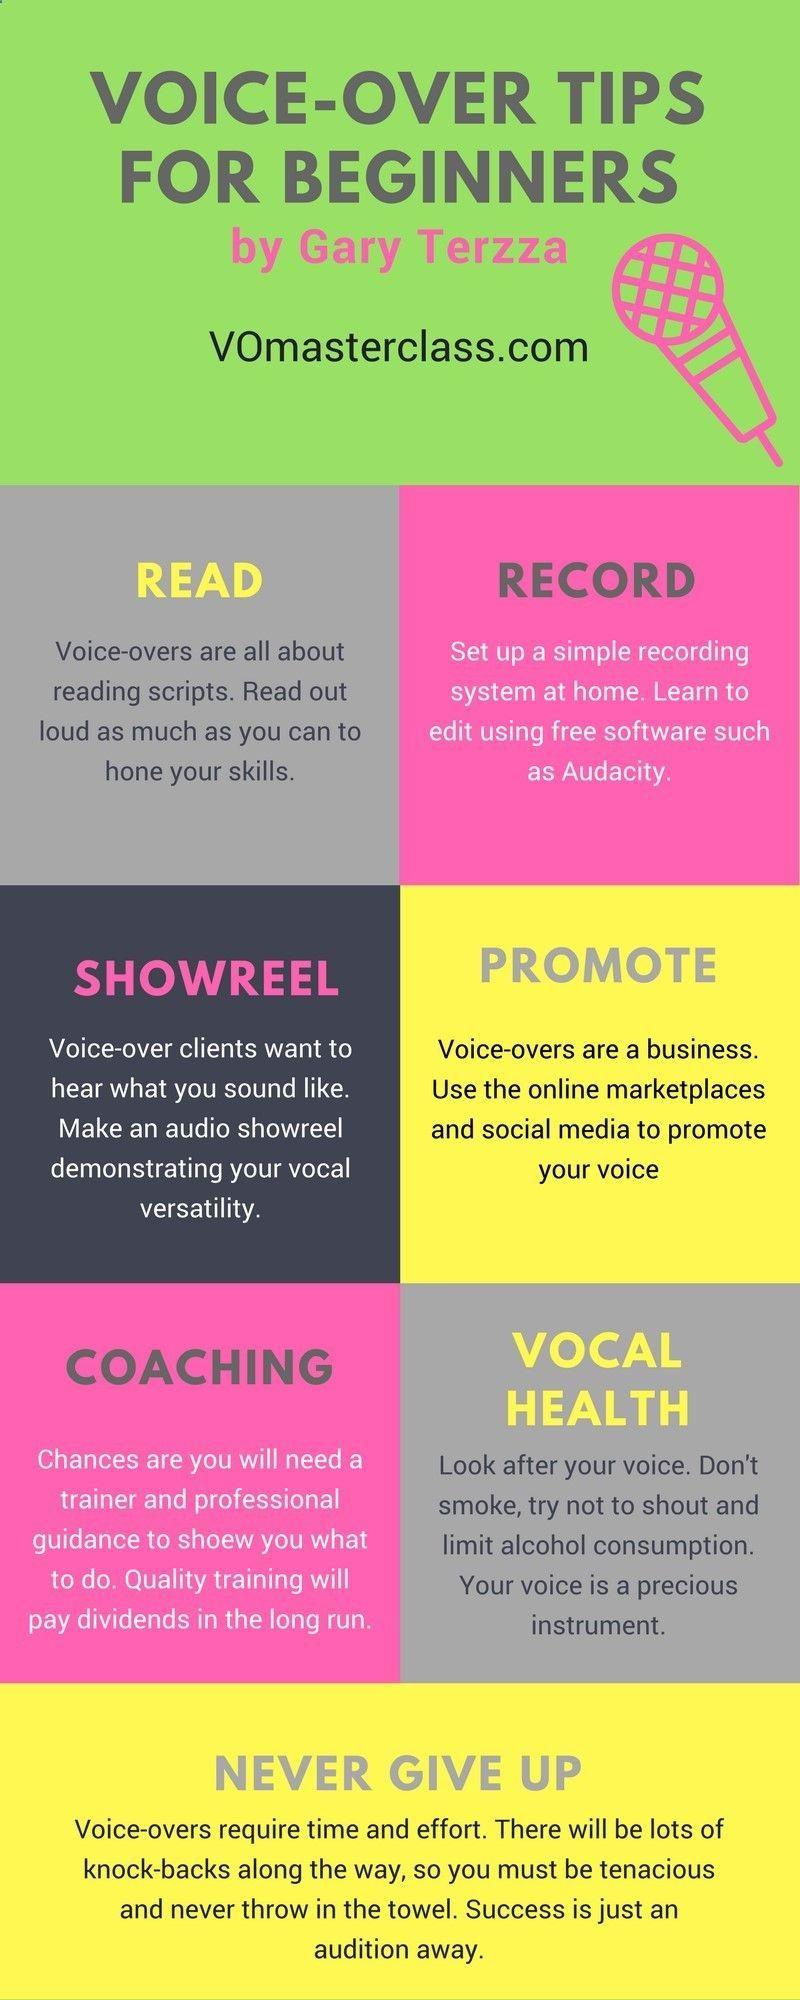 VoiceOver tips for beginners infographic. Acting